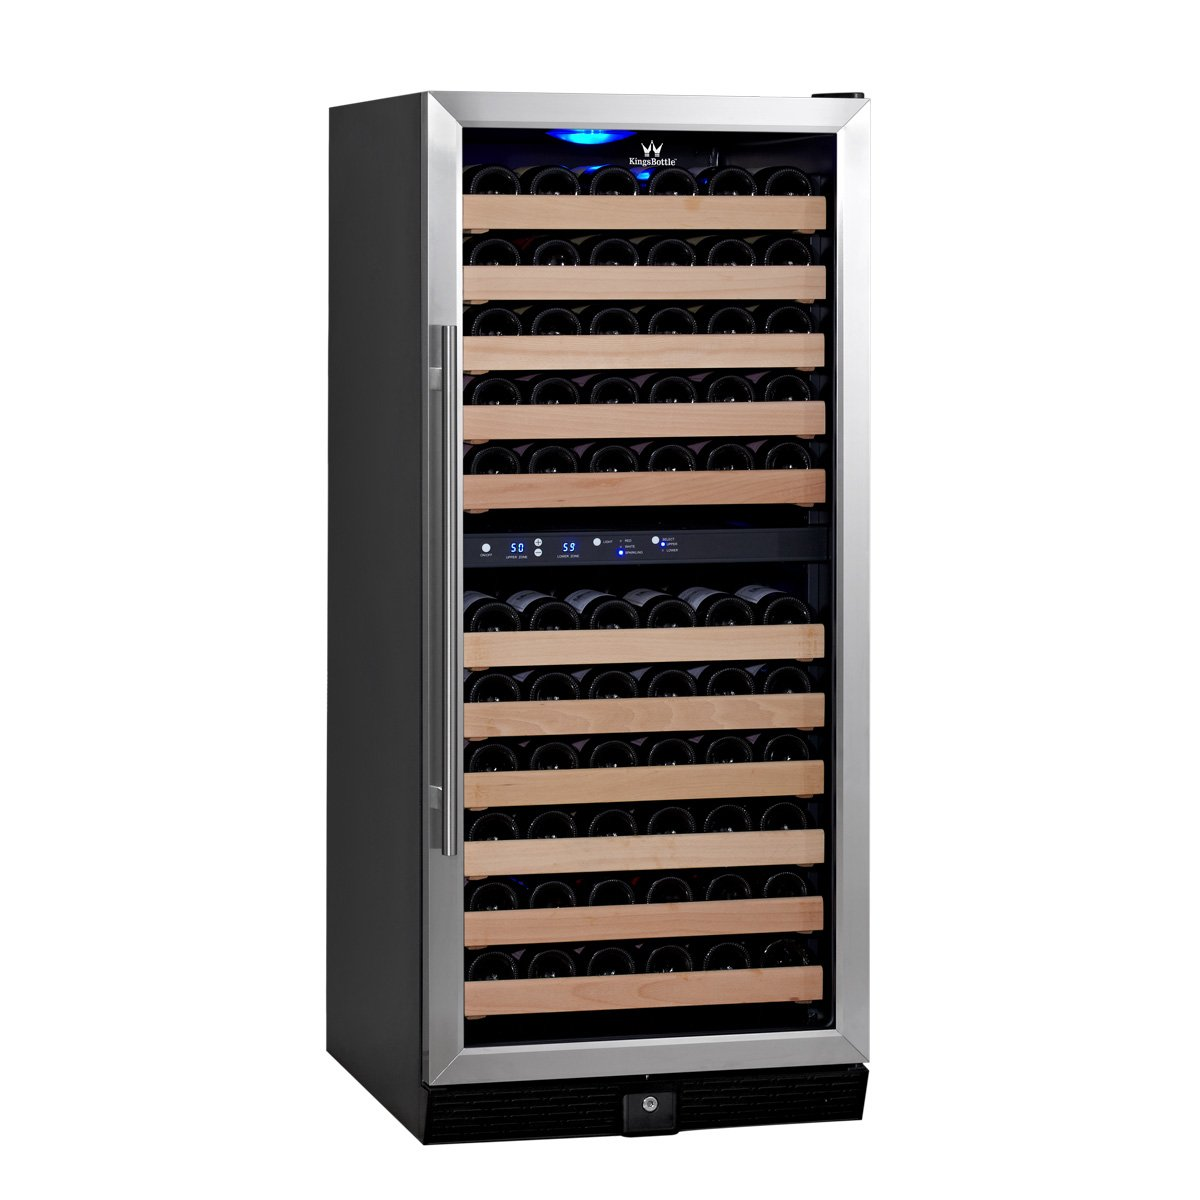 KingsBottle Dual Zone Wine Fridge -  287 Pounds Large Stainless Steel Refrigerator, 164 Wine Bottles, Vibration Free, Temperature Control Fridge with Ball rollers for Home, Bar, Restaurants